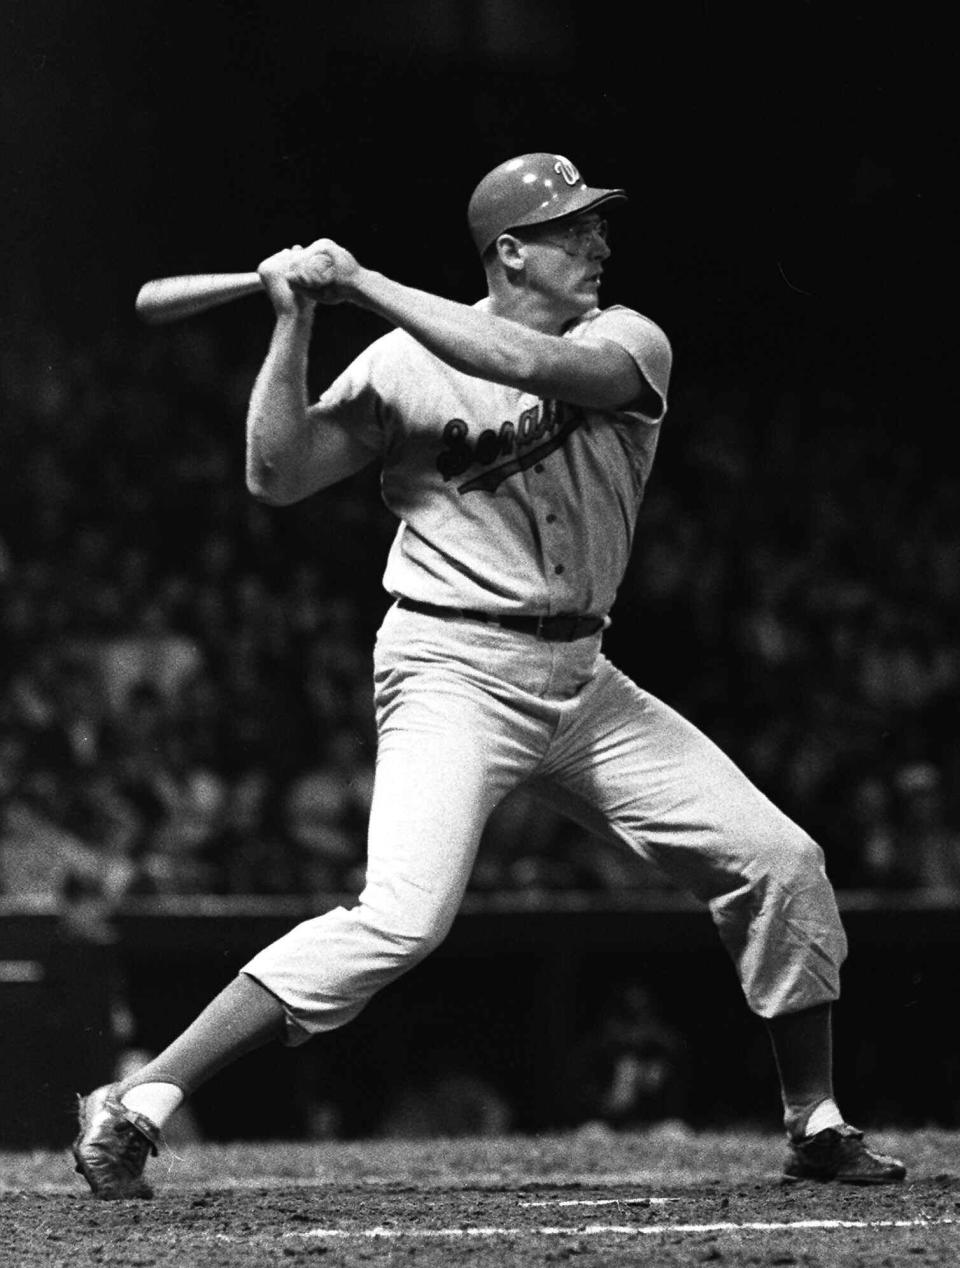 FILE - In this May 18, 1968, file photo, Washington Senators slugger Frank Howard connects for a ninth inning home run against the Detroit Tigers, in Detroit. They painted the seats white where Hondo's shots landed in the upper deck.(AP Photo/stf)